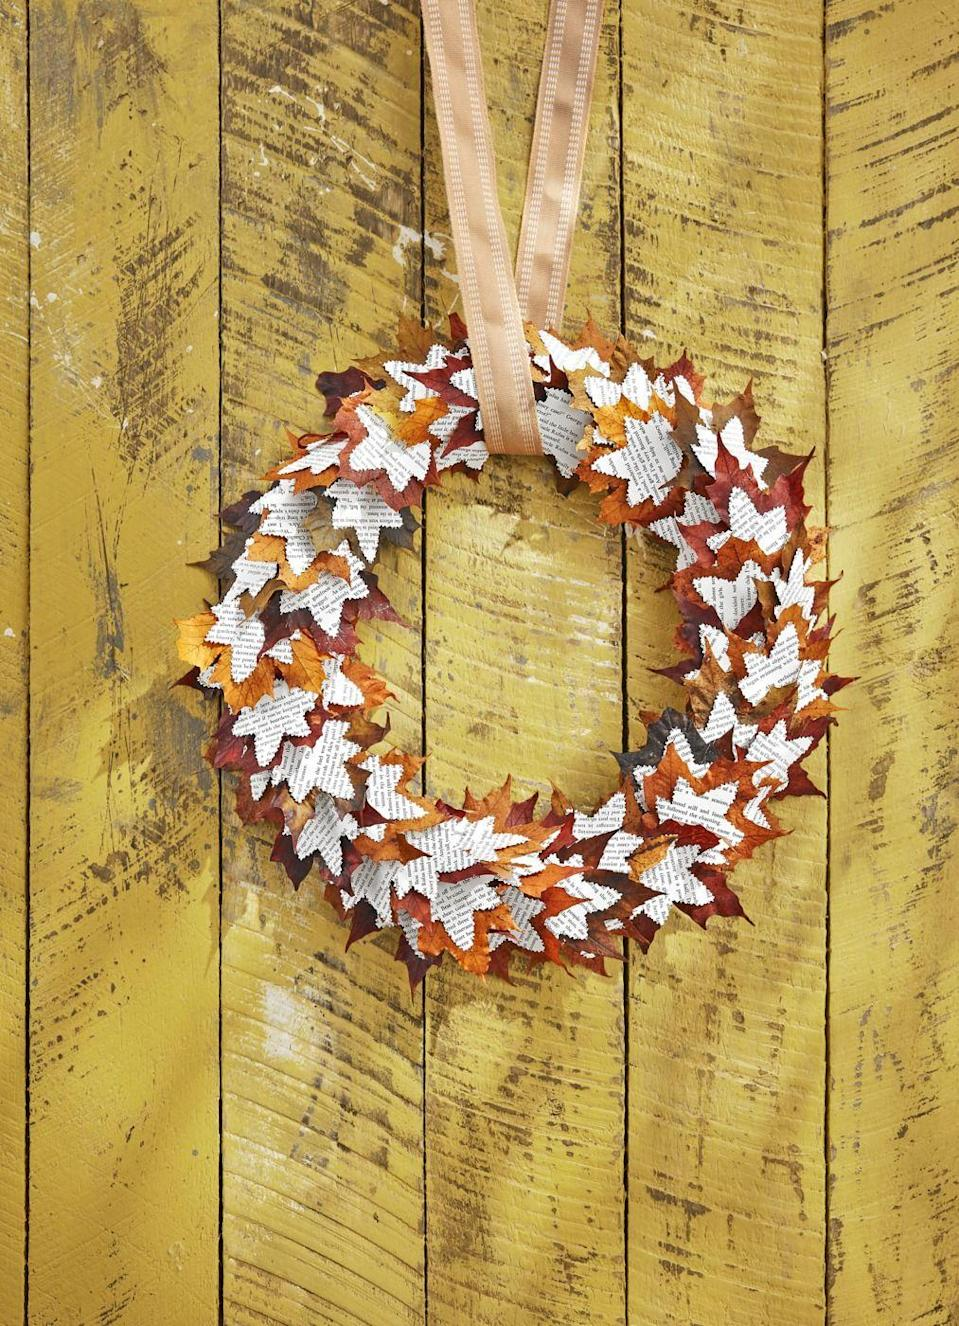 """<p>How fun is this paper wreath? Allow it to bring the spirit of fall right to your front door this year.</p><p><strong>Make the wreath:</strong> Draw a 3-inch-wide maple leaf shape on a piece of cardboard and cut out to create a stencil. Trace on original pages (or, preferred, photocopied pages) of a vintage book—consider a fall-themed title or mystery novel—and cut out approximately 100 leaves with decorative scissors that have a """"torn paper"""" edge. Attach book page leaves to maple leaves with hot glue. Attach layered leaves to a 16-inch wreath form with hot glue, layering and overlapping them as you go. Hang with burlap ribbon. </p>"""